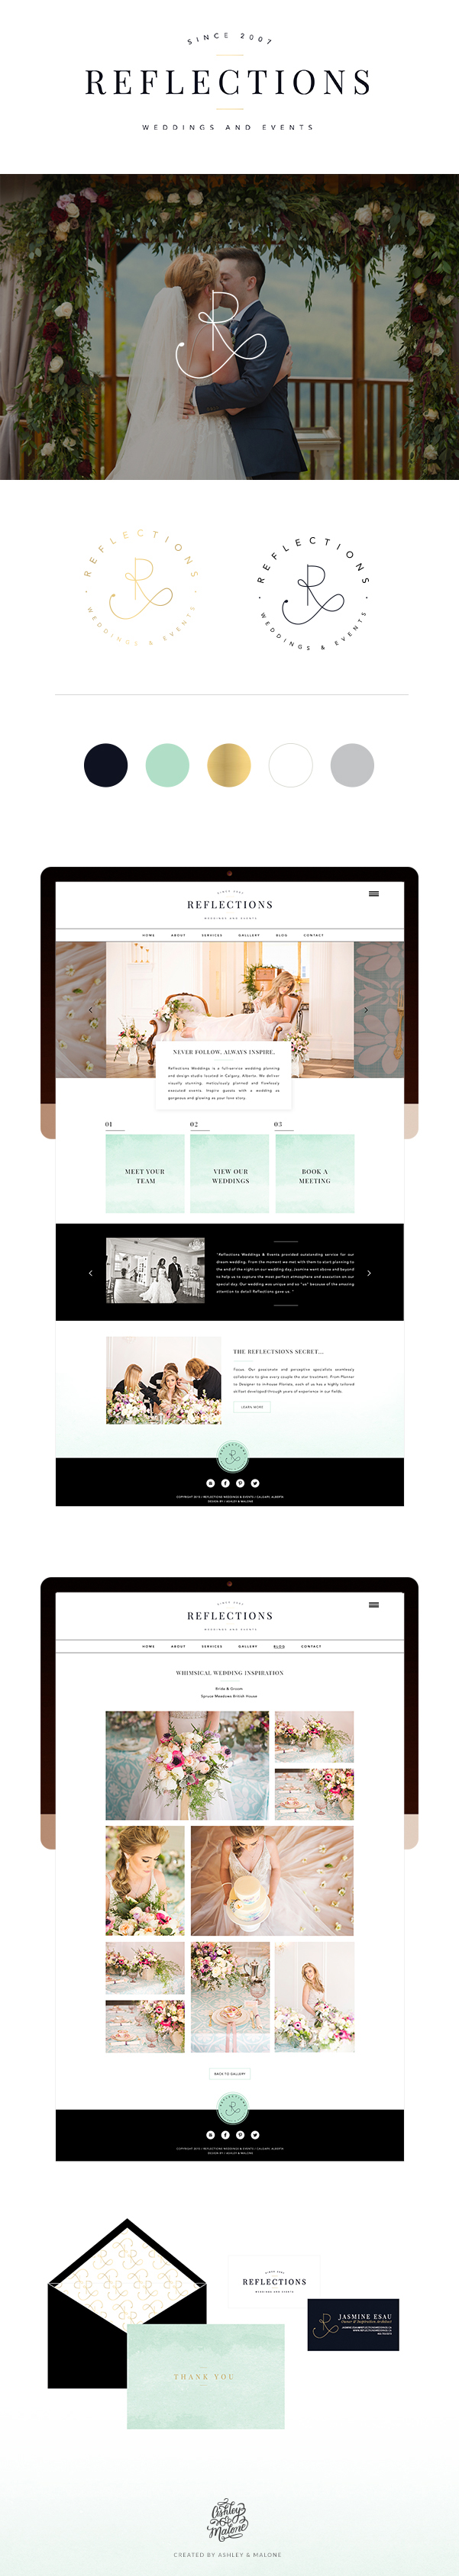 AM_BrandLoveTemplate-ReflectionsWeddings